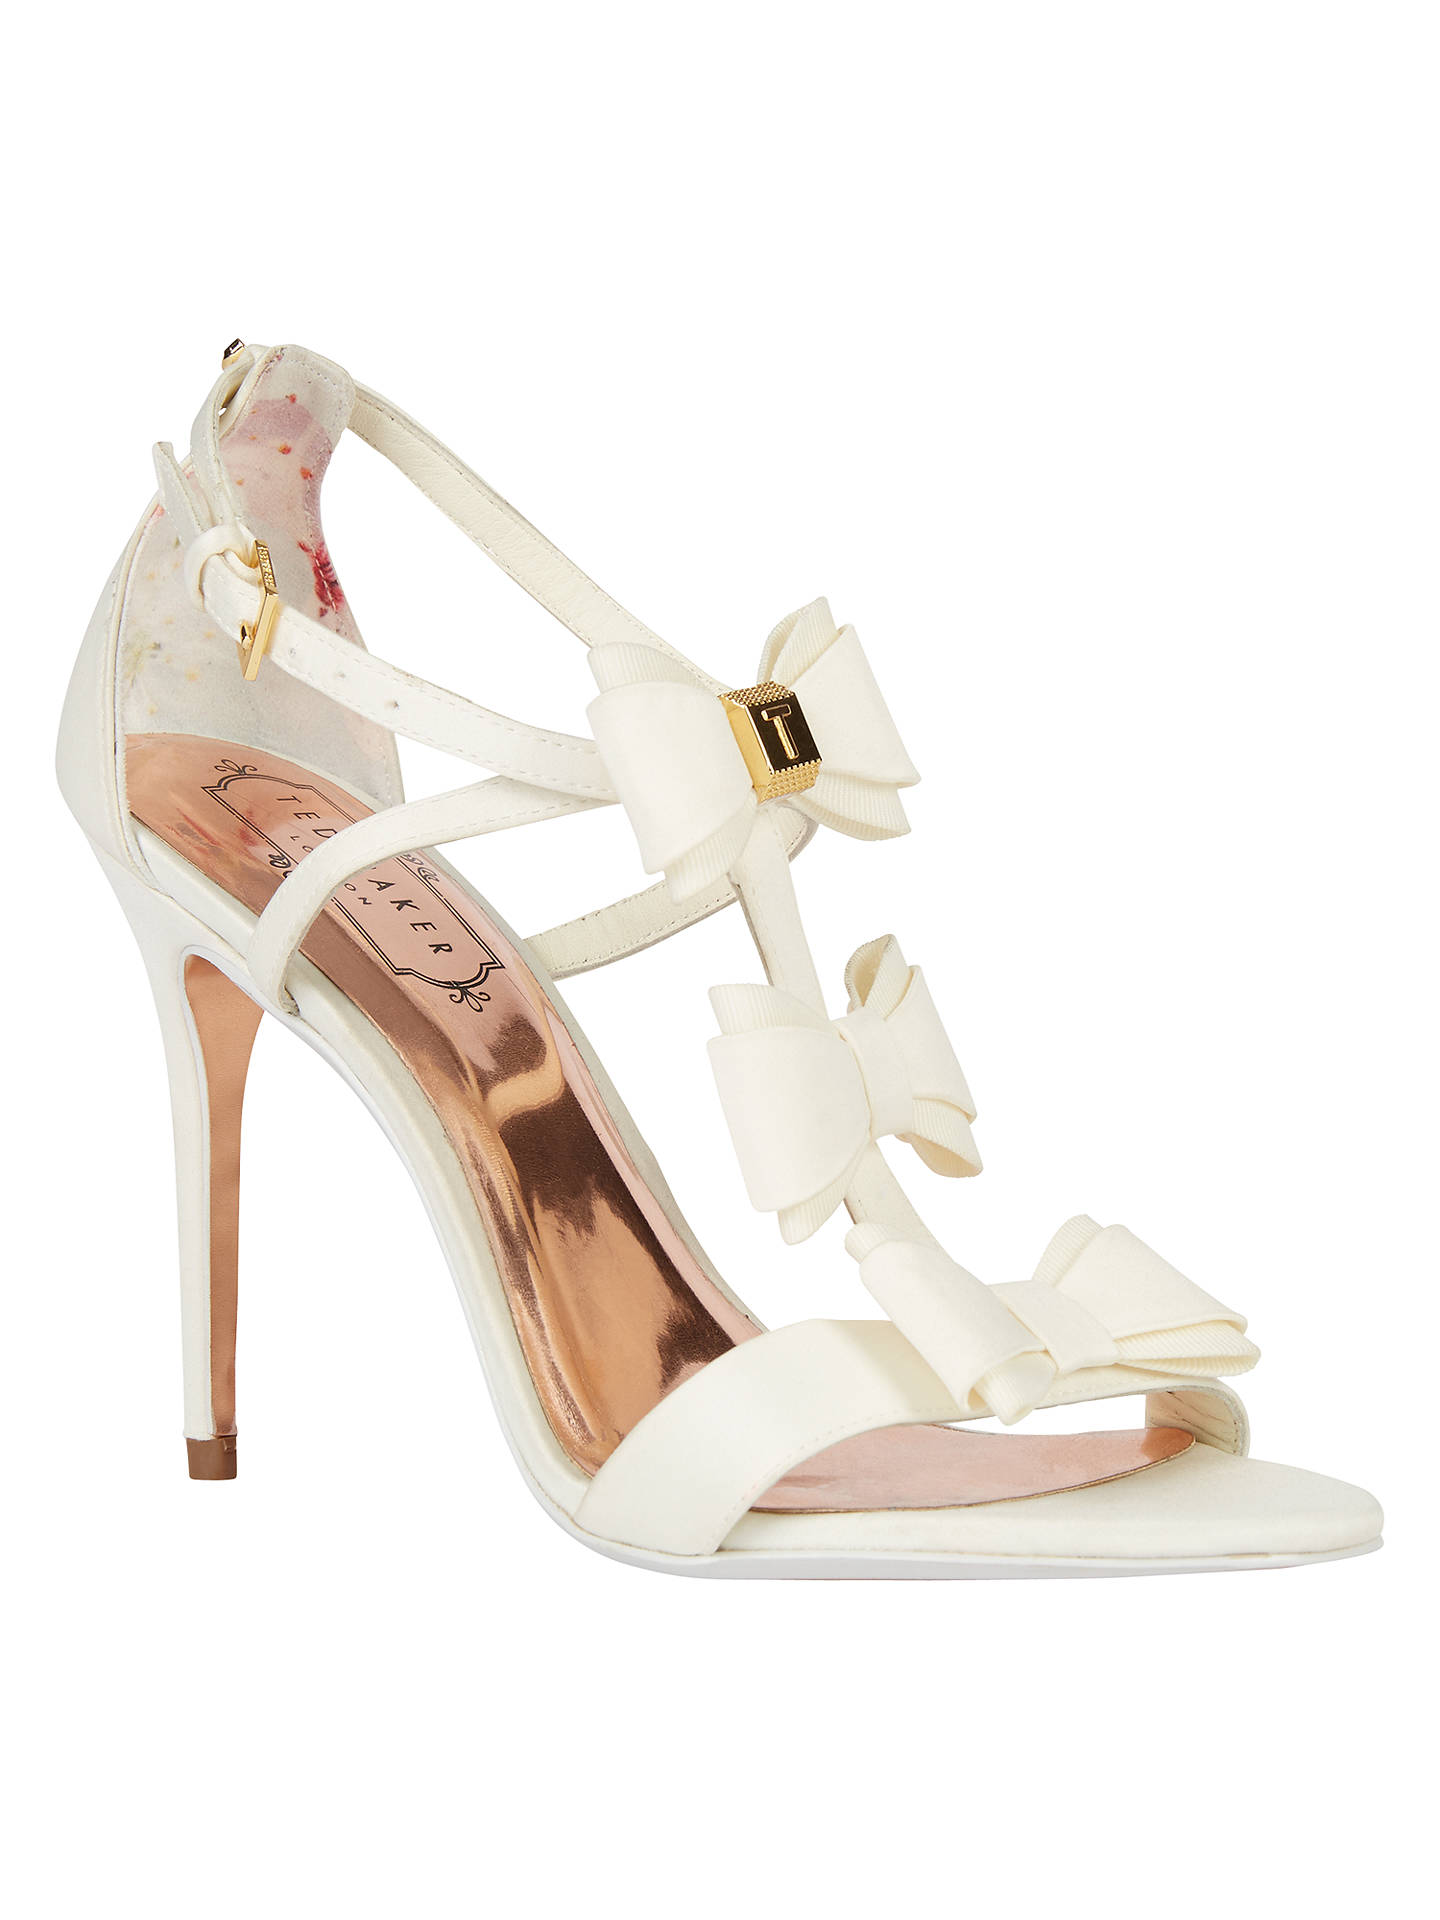 679f95711c61 Ted Baker Tie the Knot Appolini Bow Stiletto Sandals at John Lewis ...